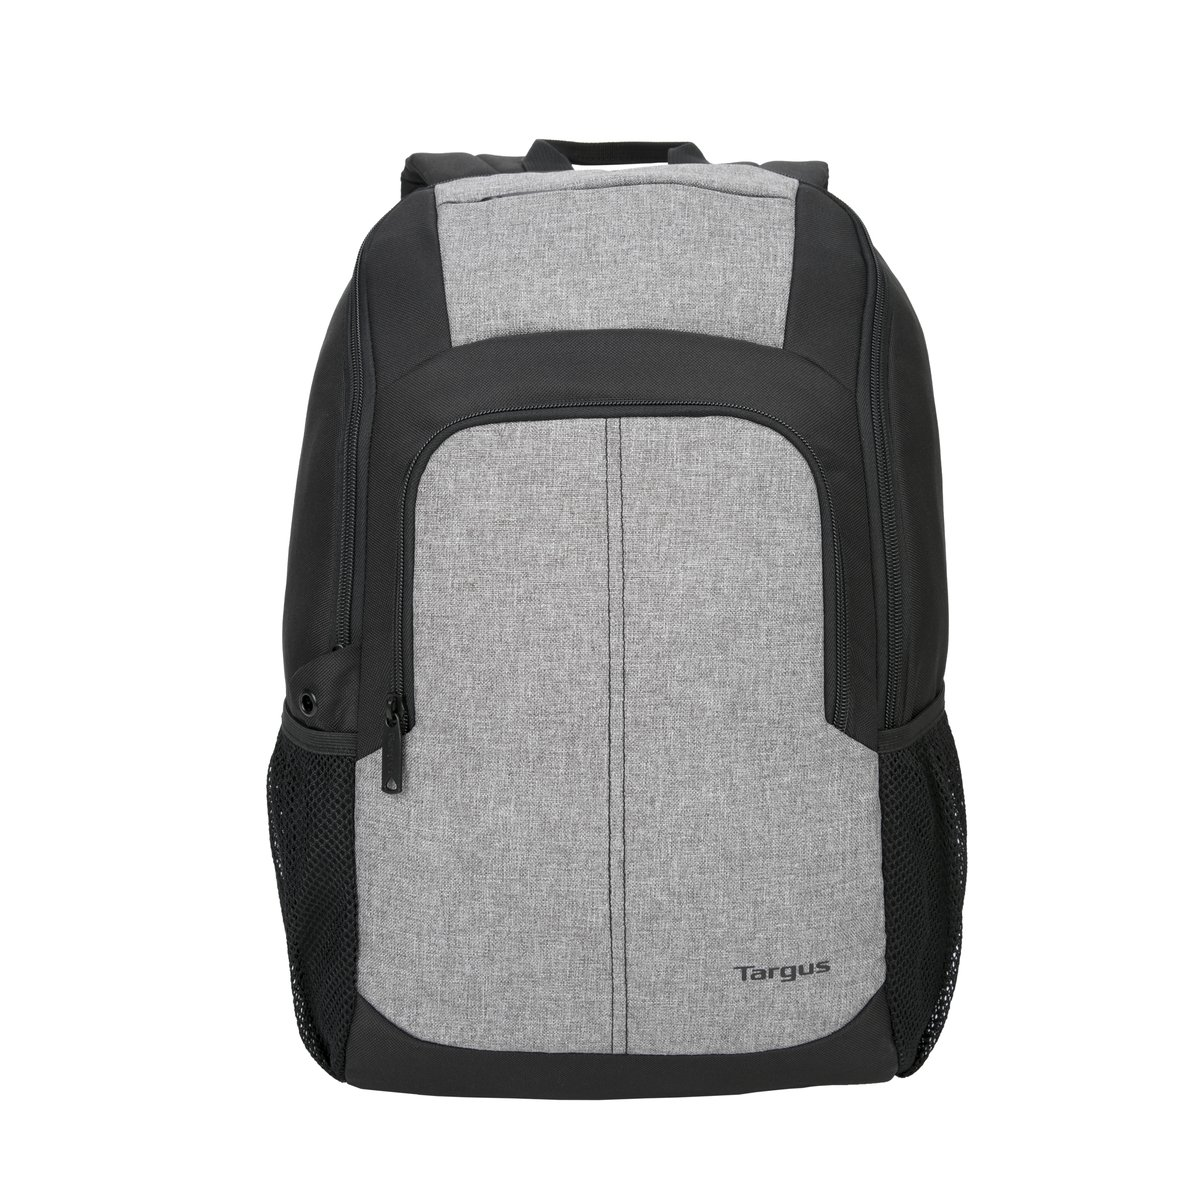 Targus Professional Business Urbanite Laptop Backpack with Sleeve for 15.6-Inch Laptop TSB873US